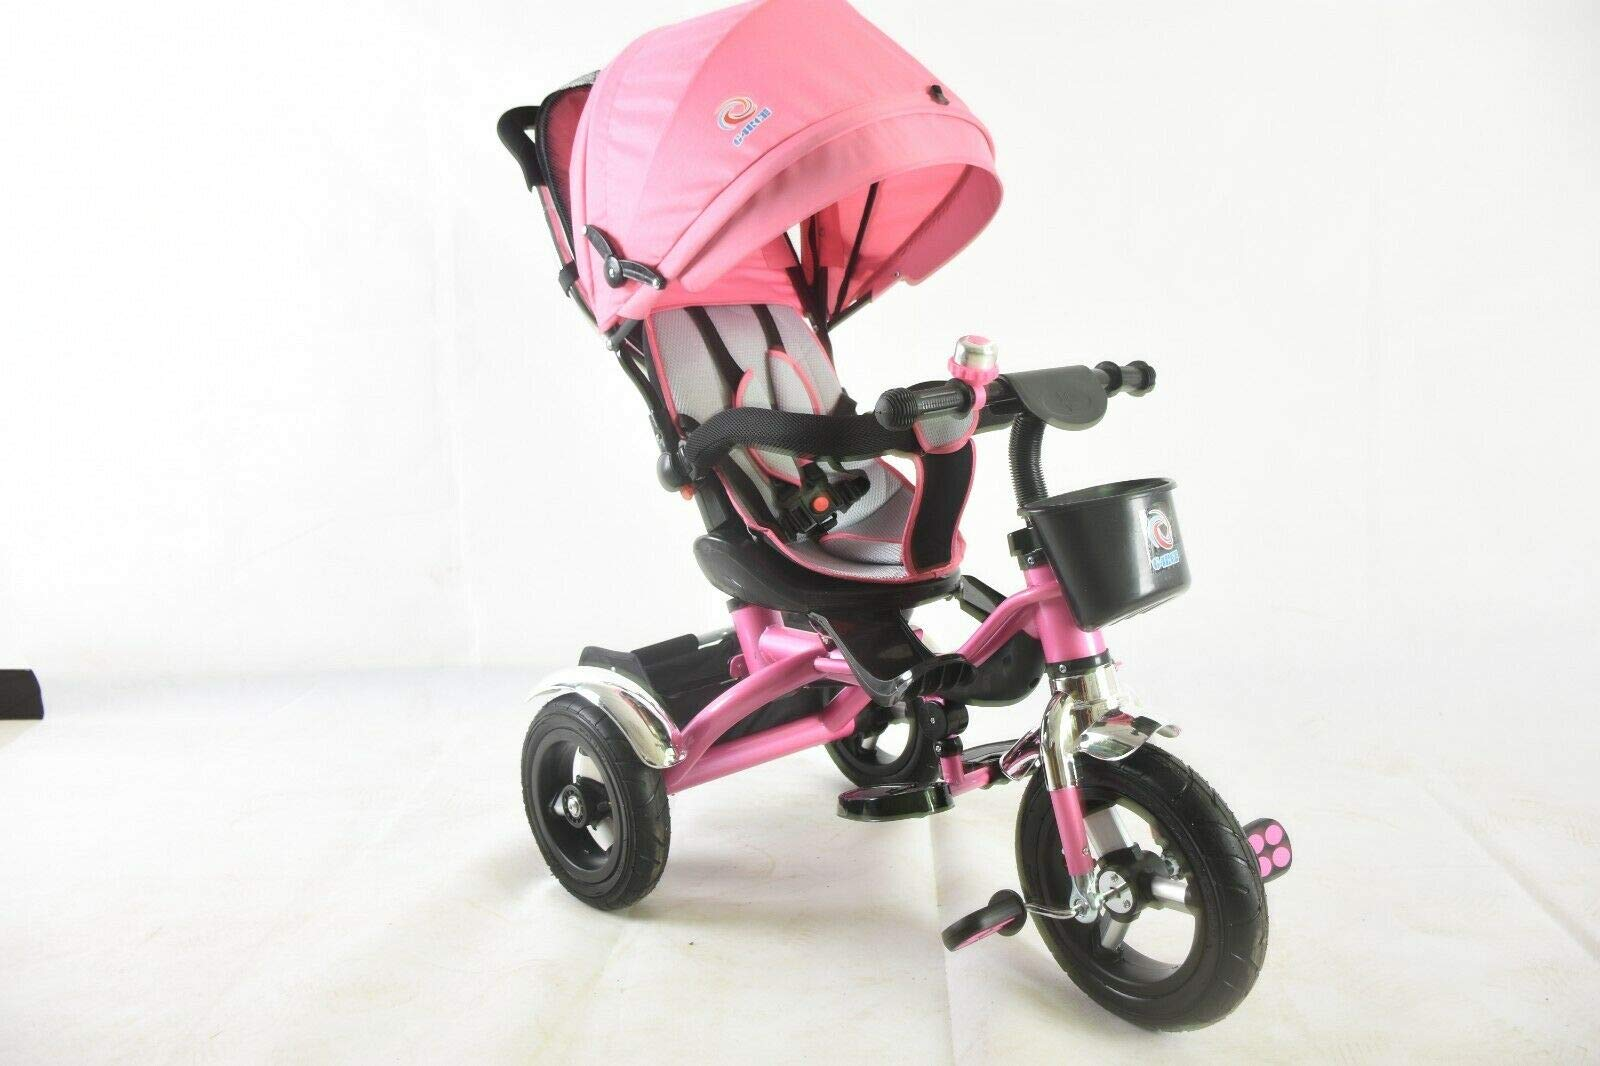 Trike Tricycle Stroller Buggy Wheel Ride Push Rain Cover Rubber Tyres 4 in 1 System (Pink) Generic Removable Leg rest for kids to feet up. Adjustable and removable parent handle or control bar. Plastic seat with removable padded cushion and lap seat belt to keep your child safe. 3